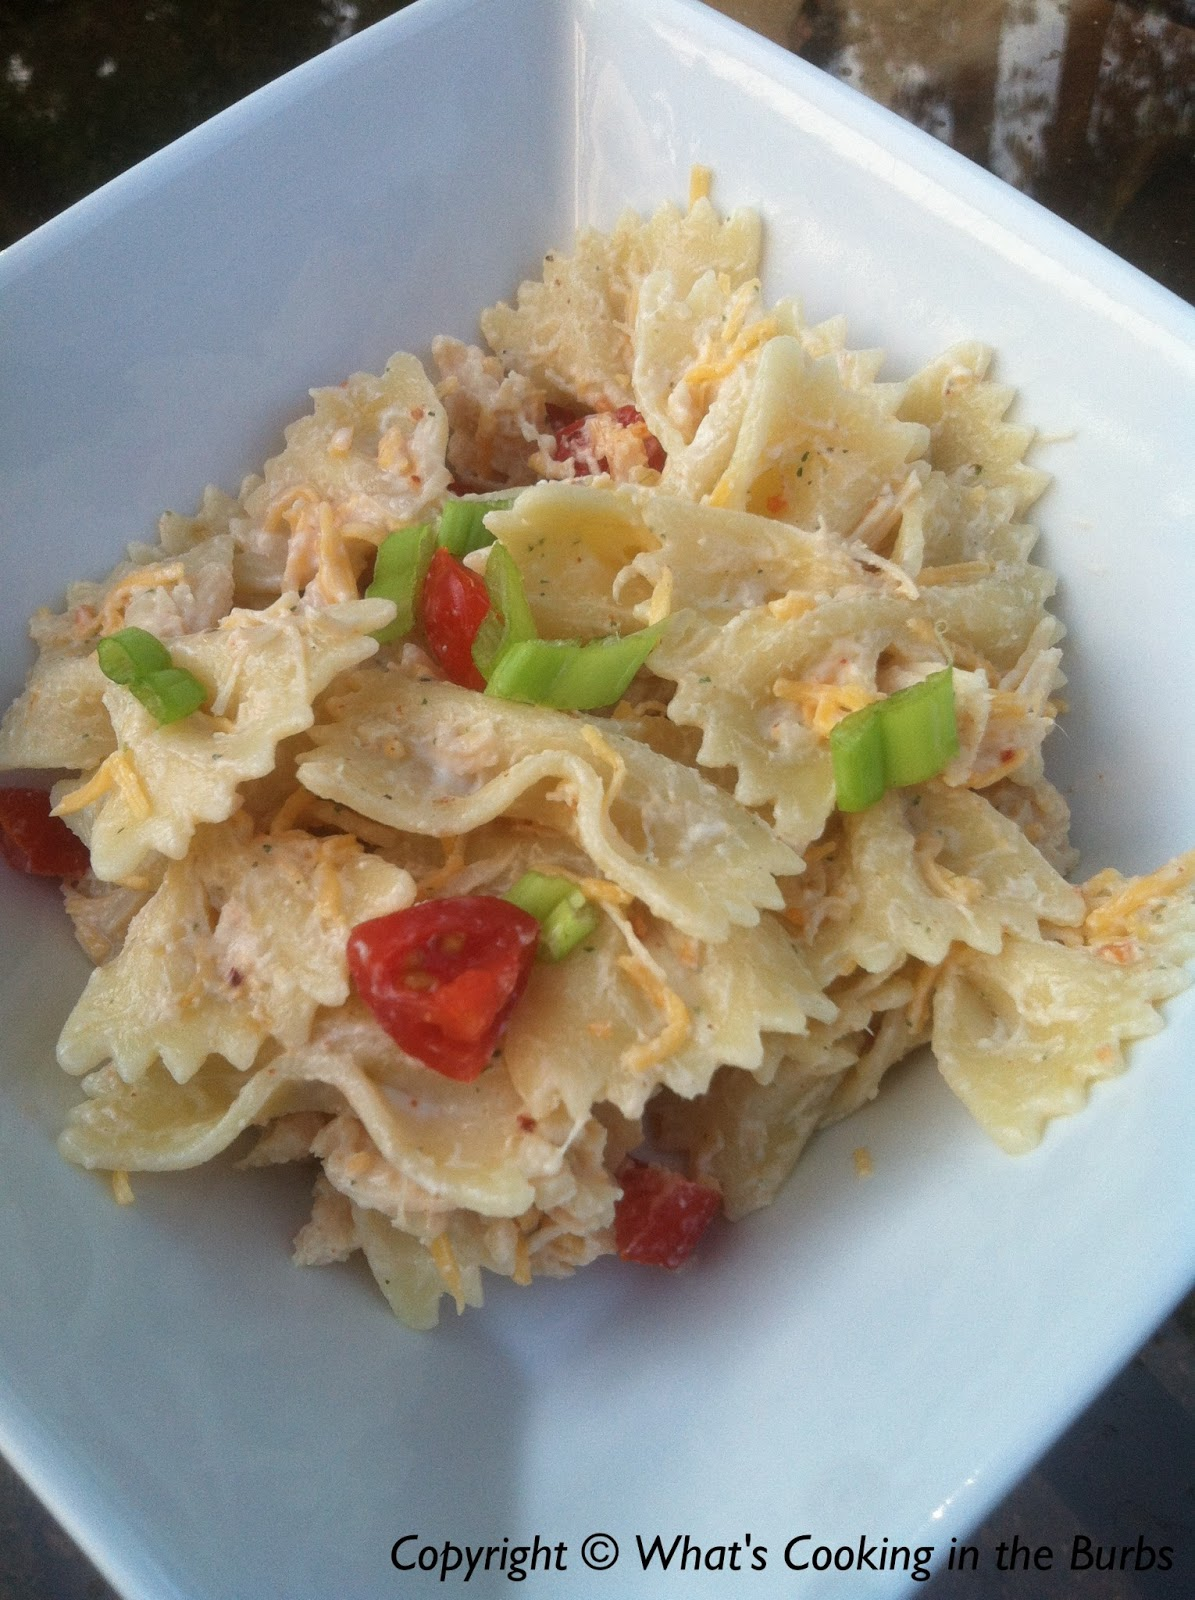 ... pasta salad i love this salad since i can prepare it ahead of time